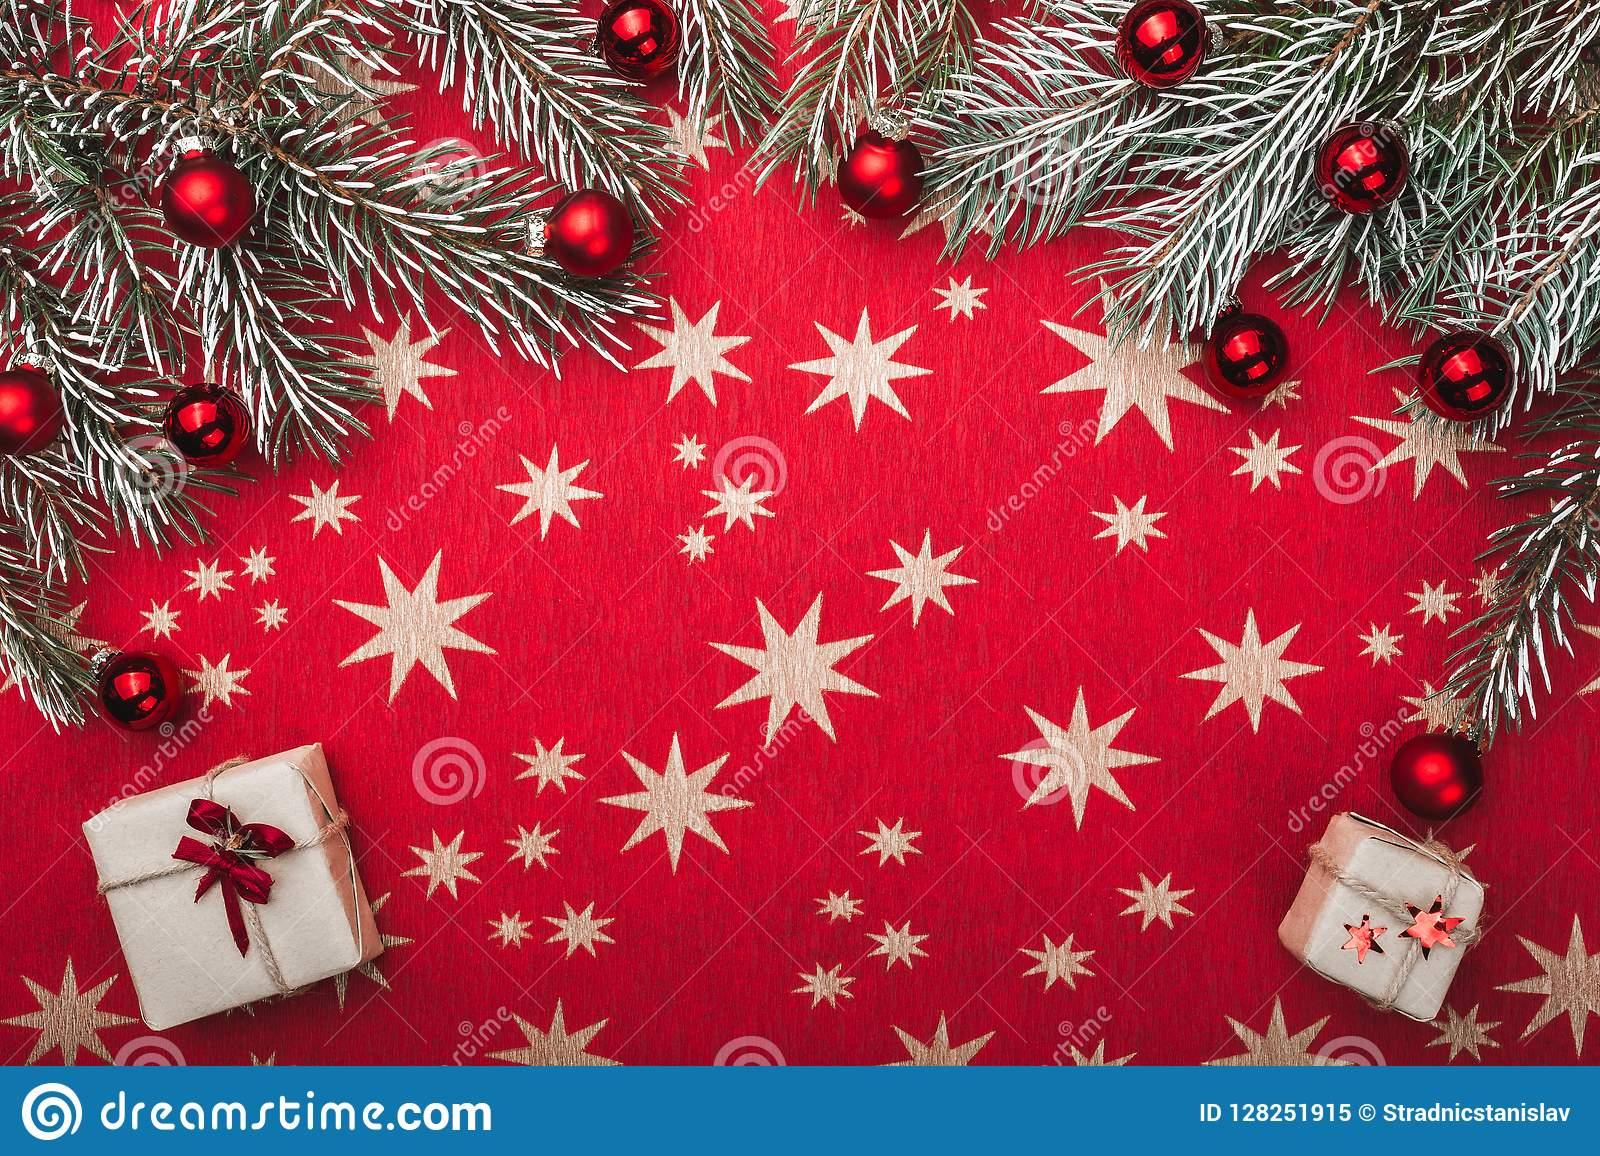 Xmas card, red background with stars. Space for your text. Fir branches with red balls. Top view